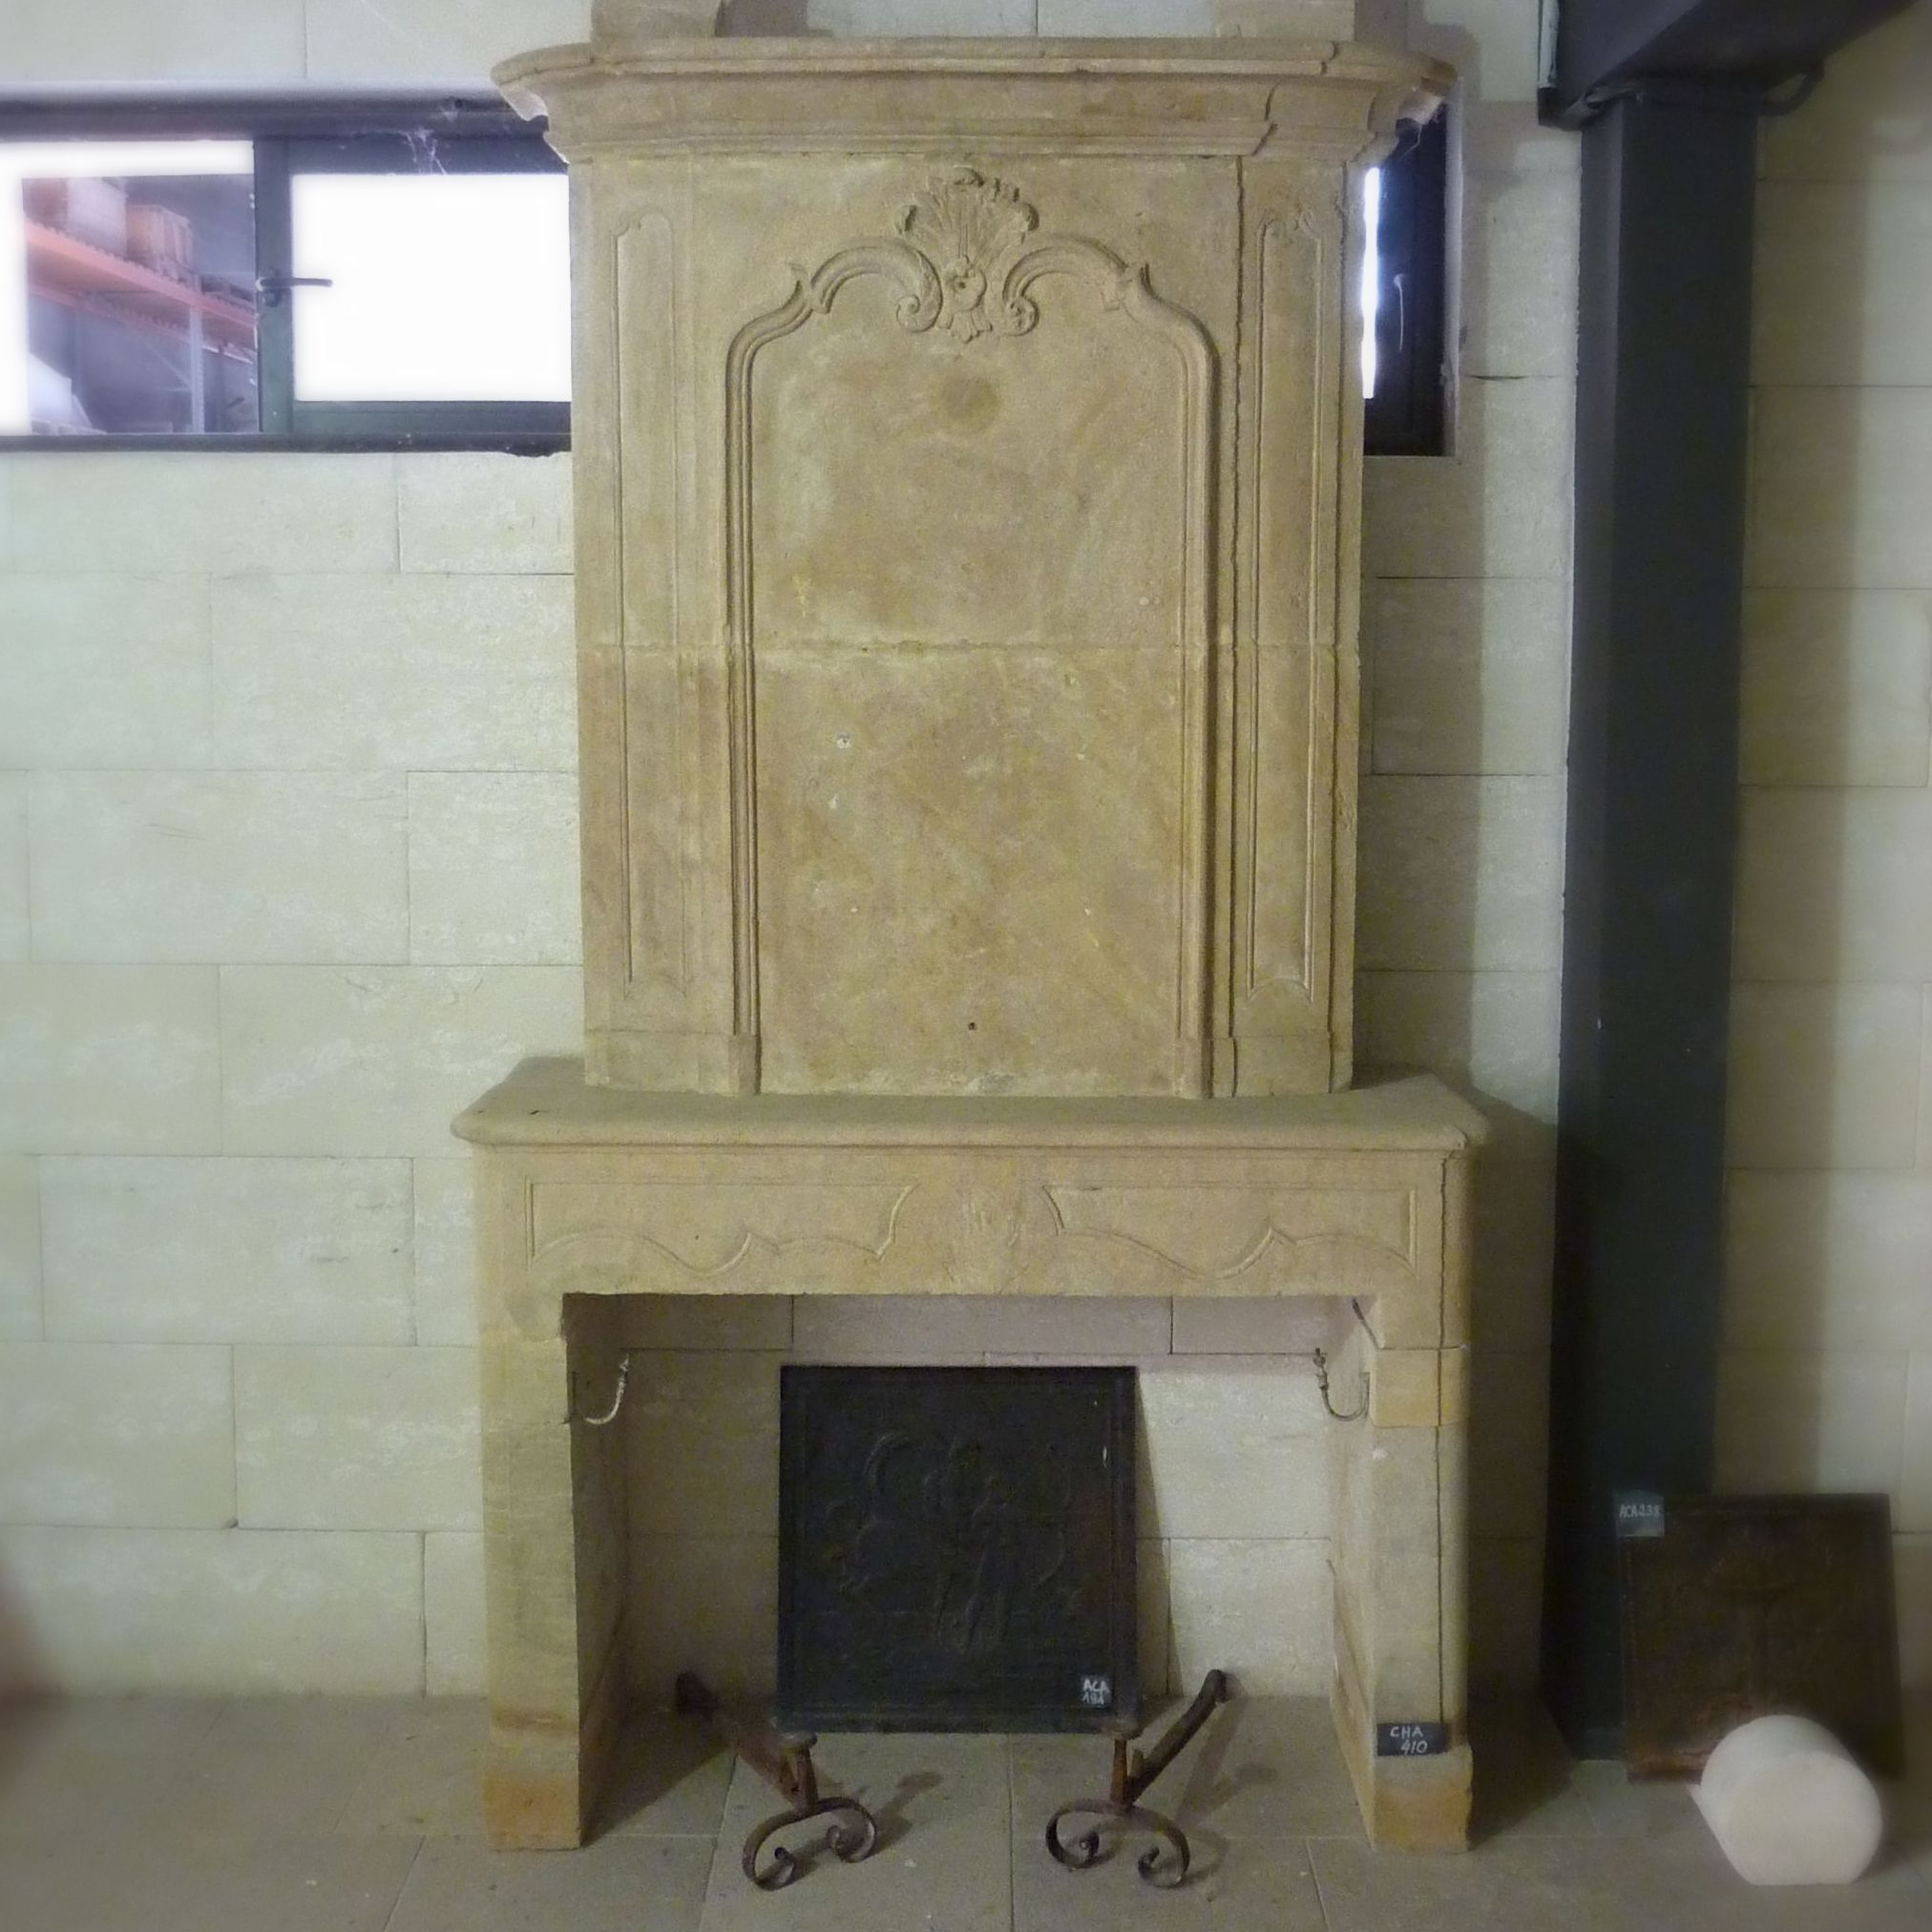 18th century fireplace with overmantle- an old fireplace recovered in a French monastery.